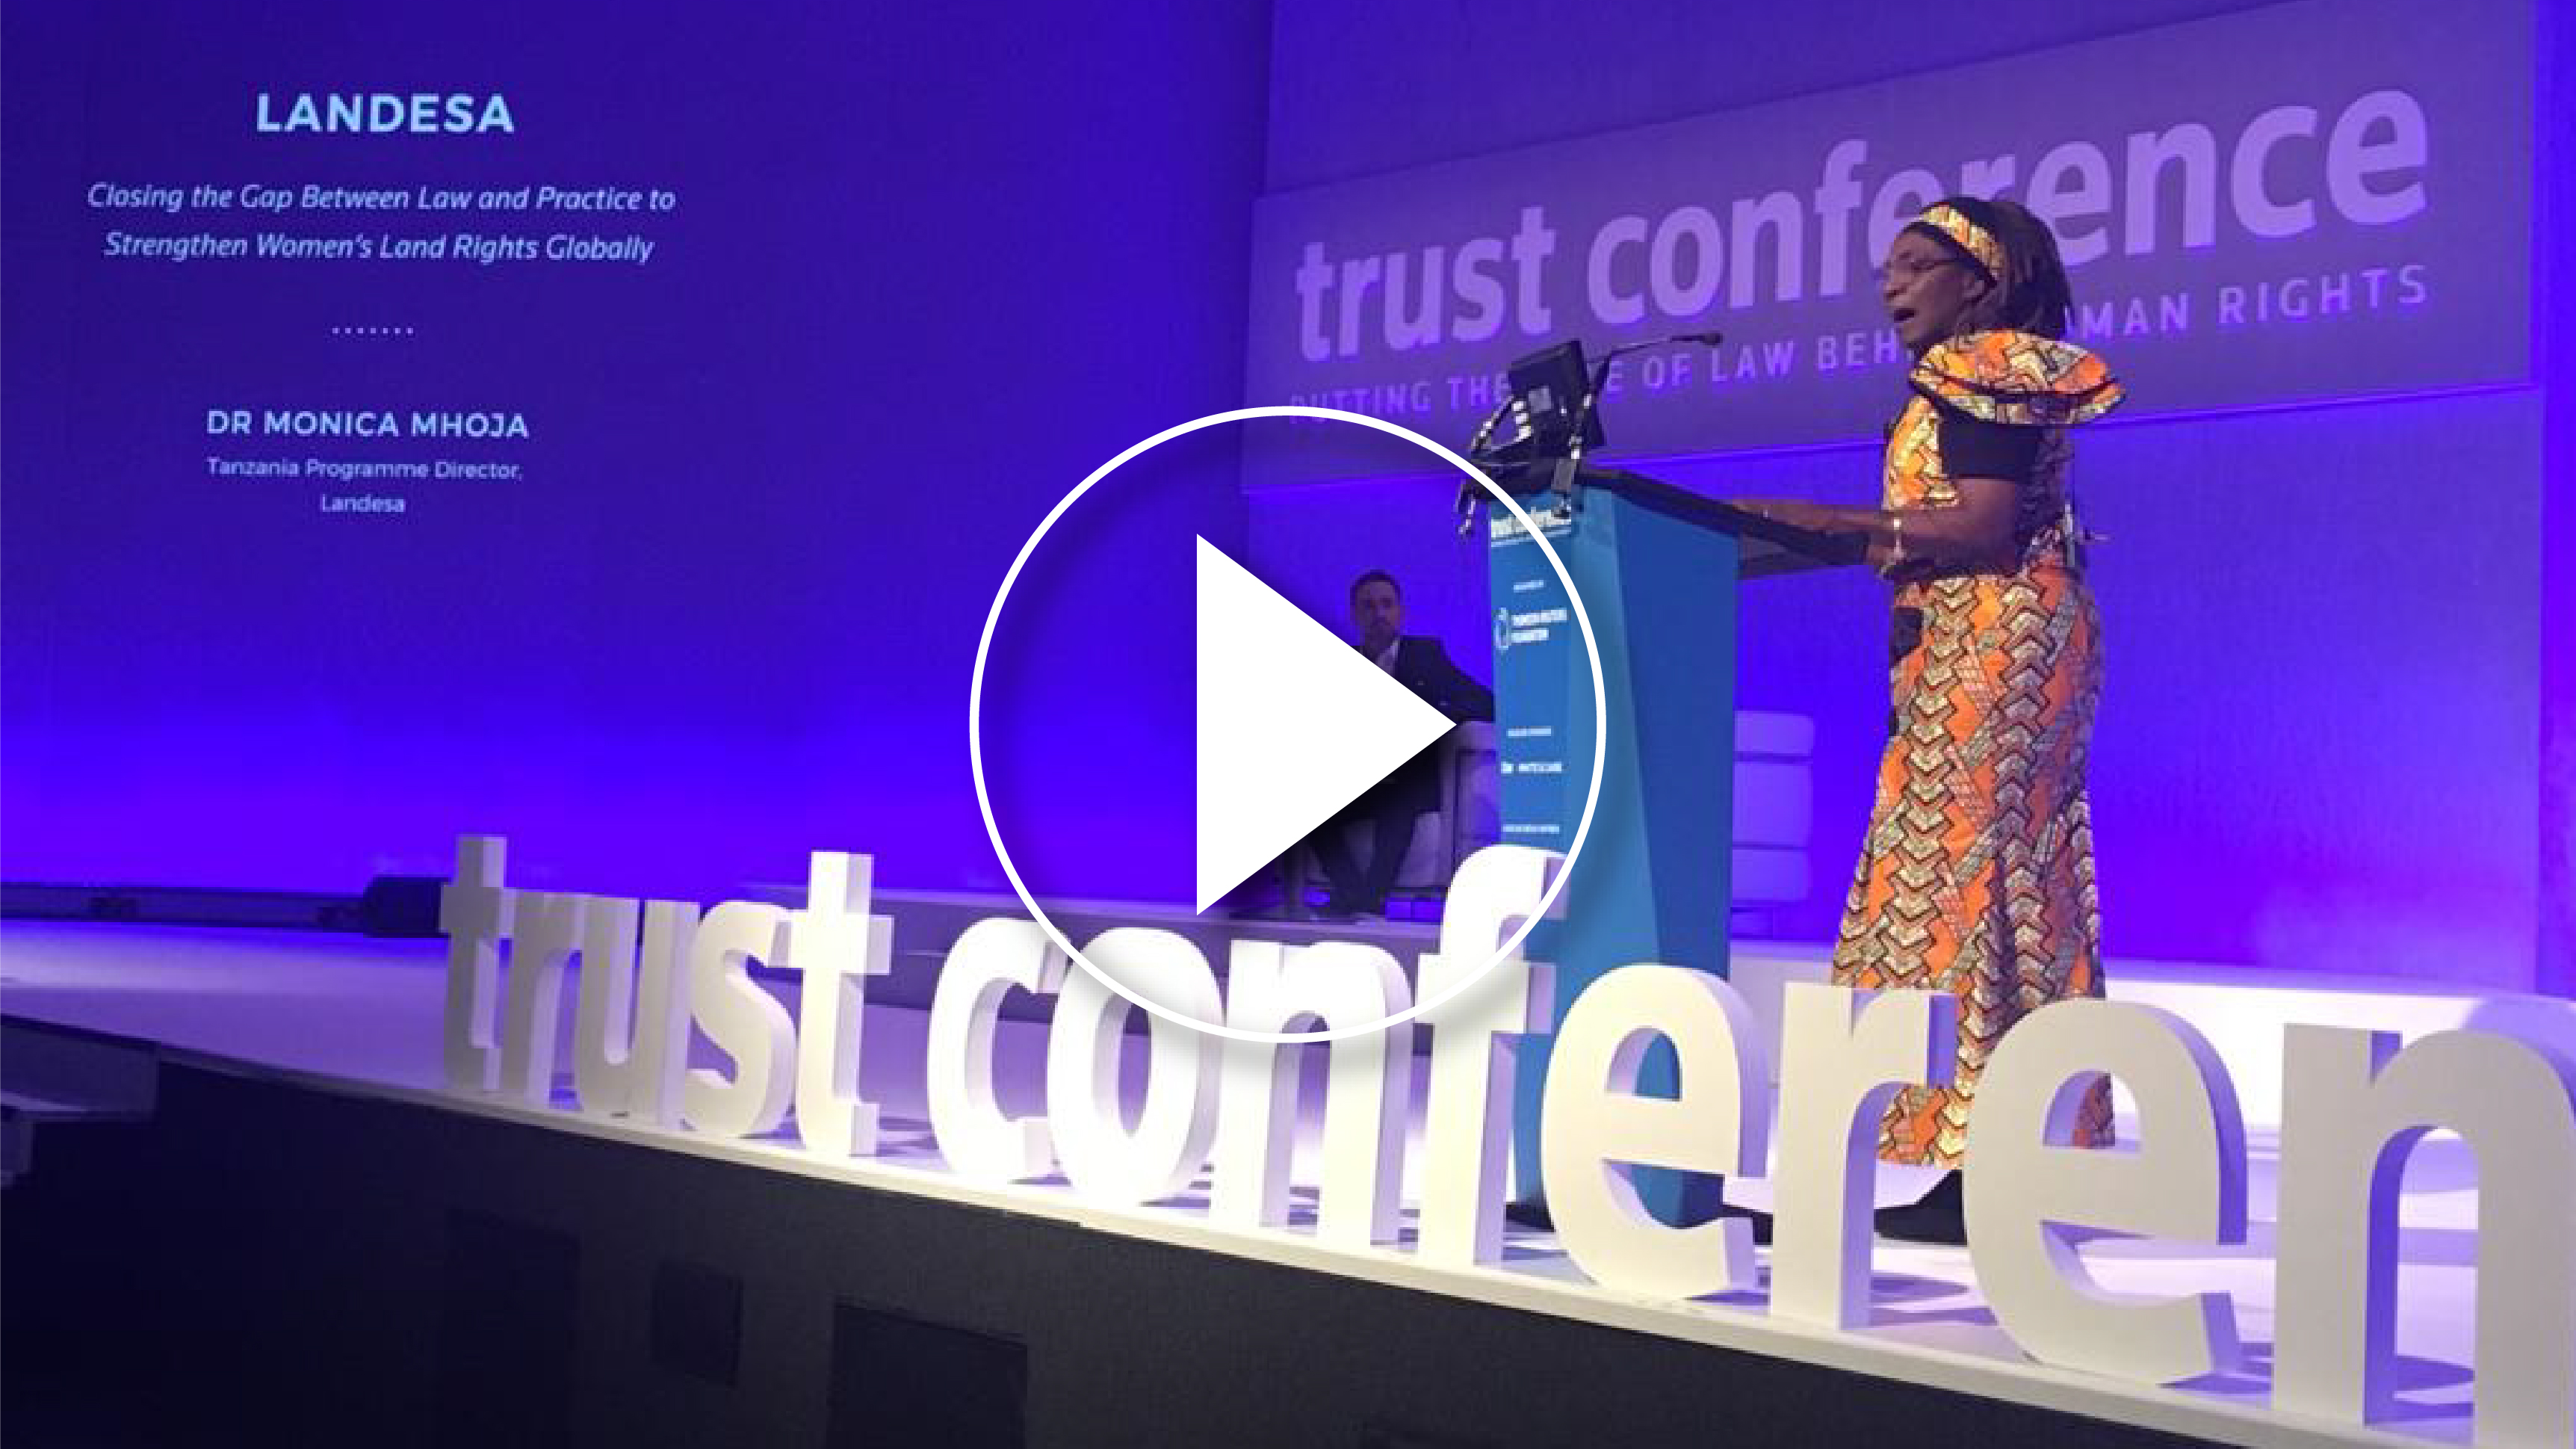 Video of Monica Mhoja speaking at the Trust Conference